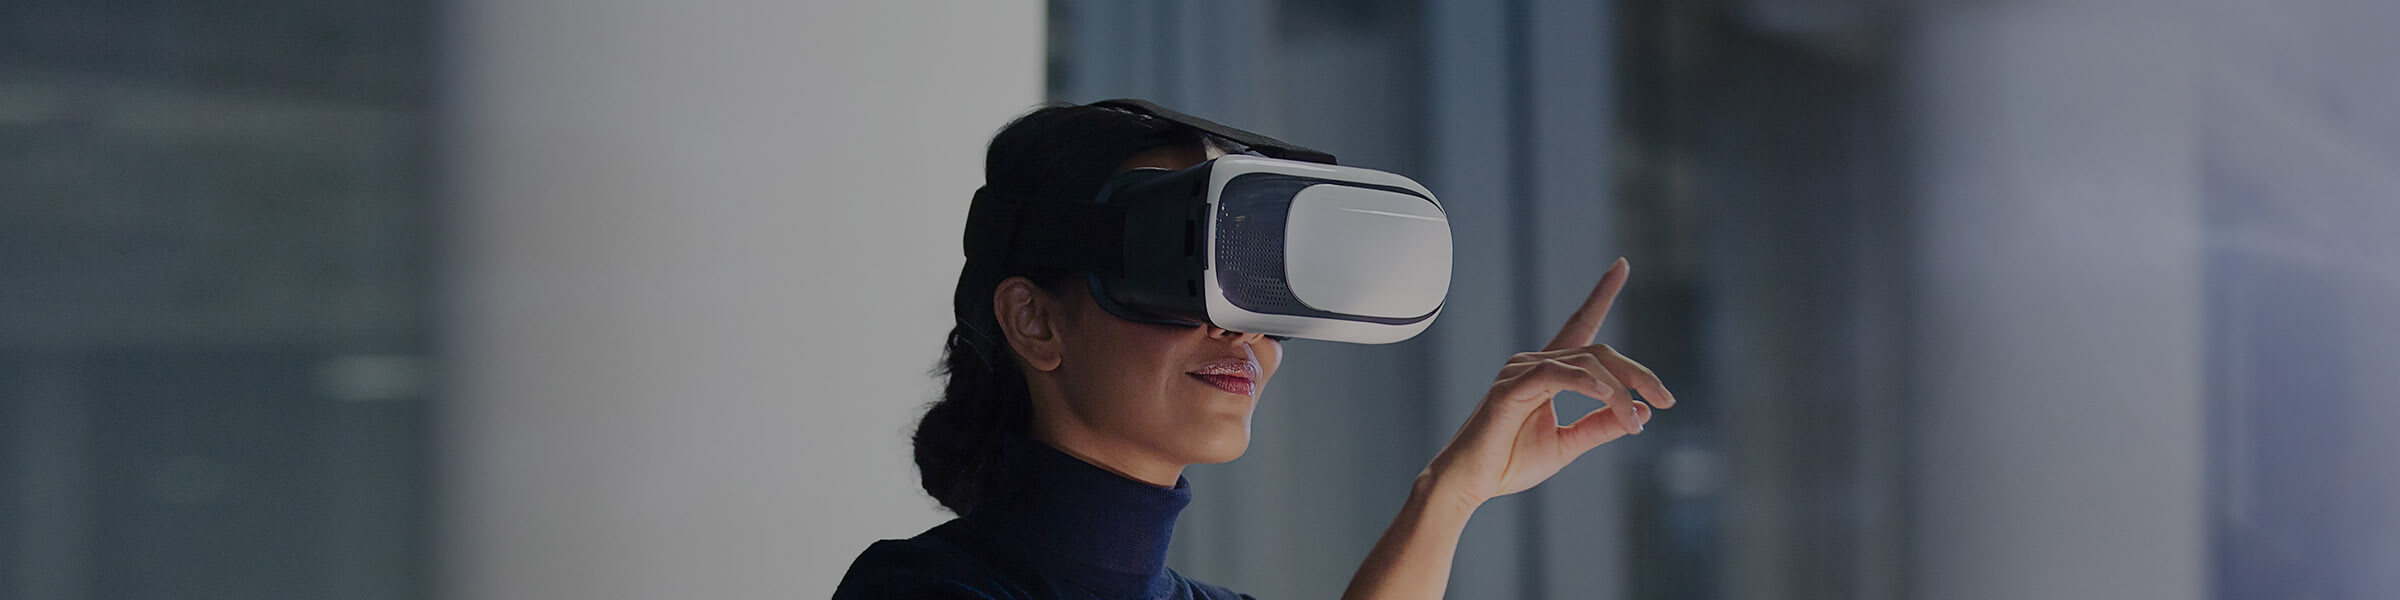 Businesswoman VR